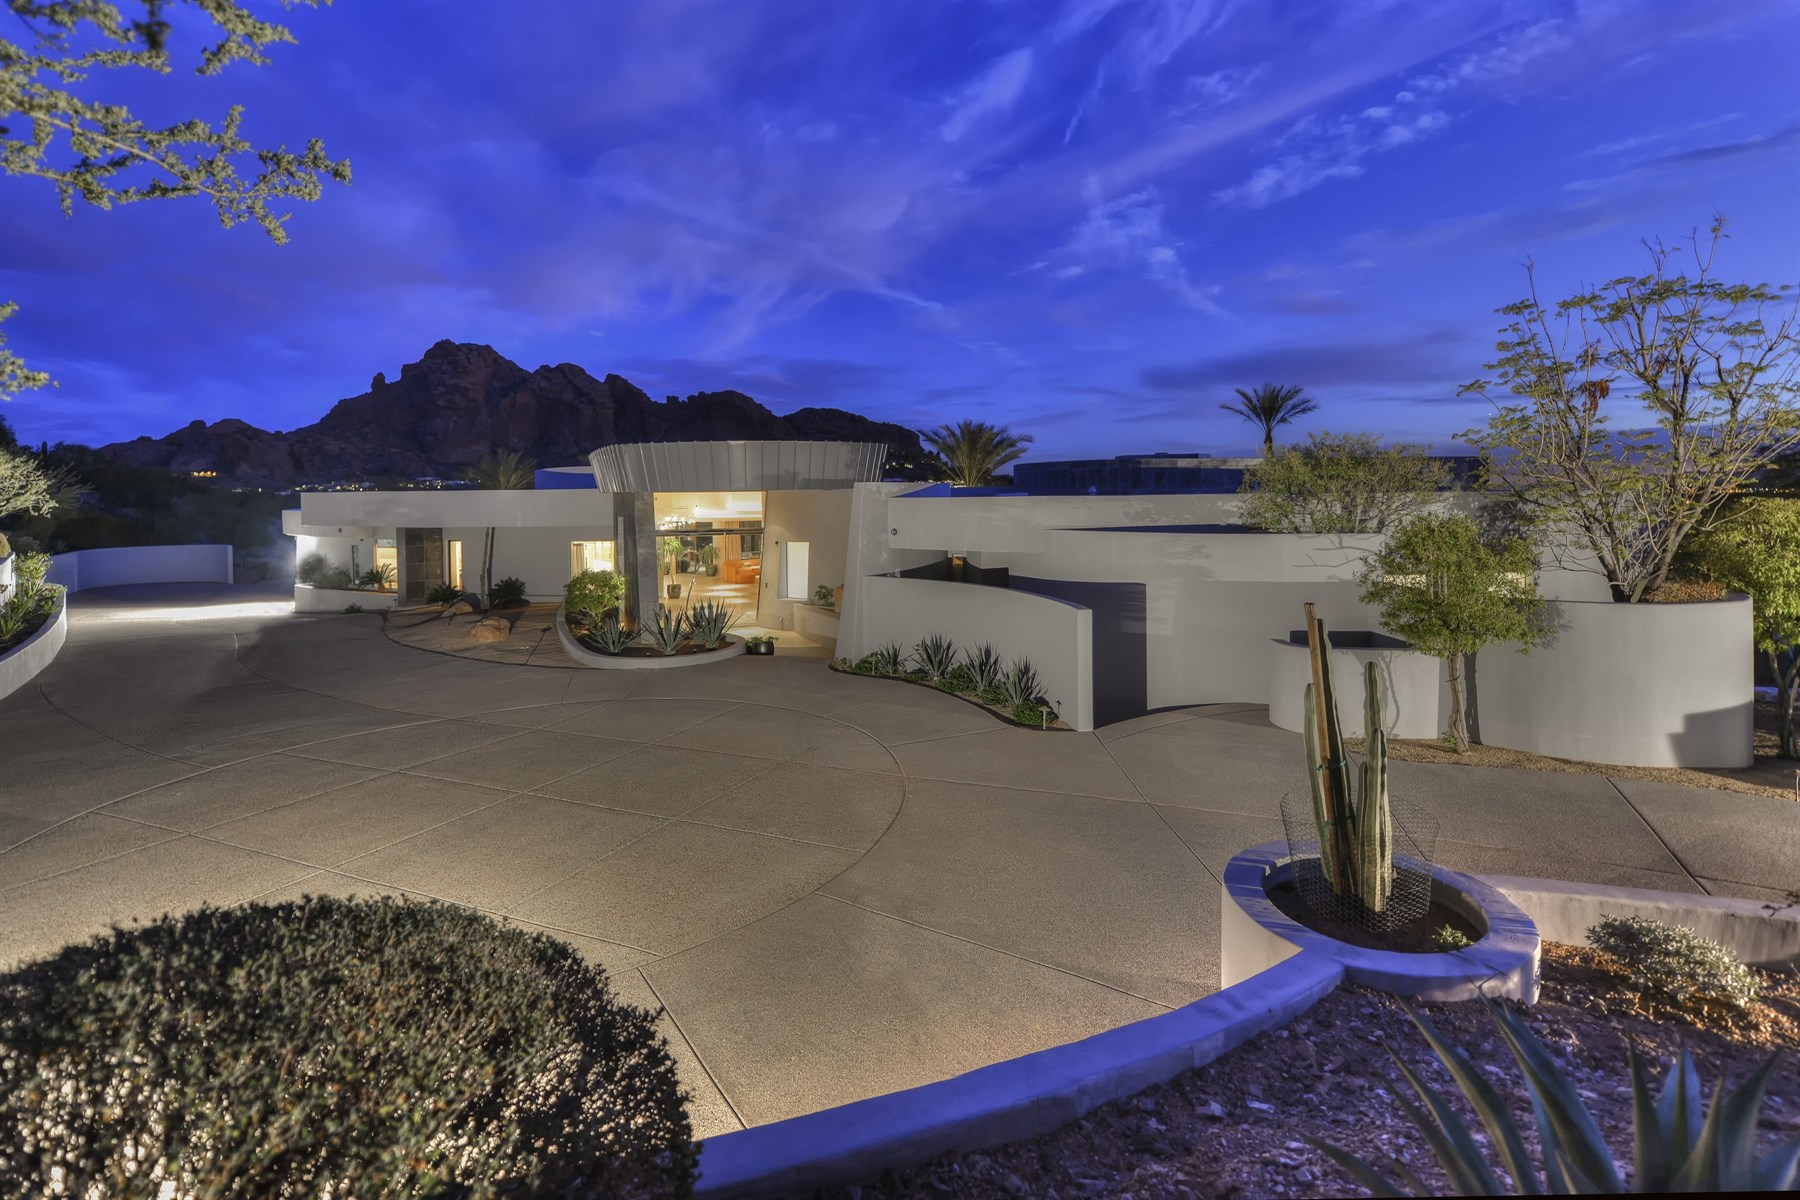 Einfamilienhaus für Verkauf beim Breathtaking Custom Contemporary Includes Holistic Views Of The Praying Monk 6021 N 44th Street Paradise Valley, Arizona 85253 Vereinigte Staaten